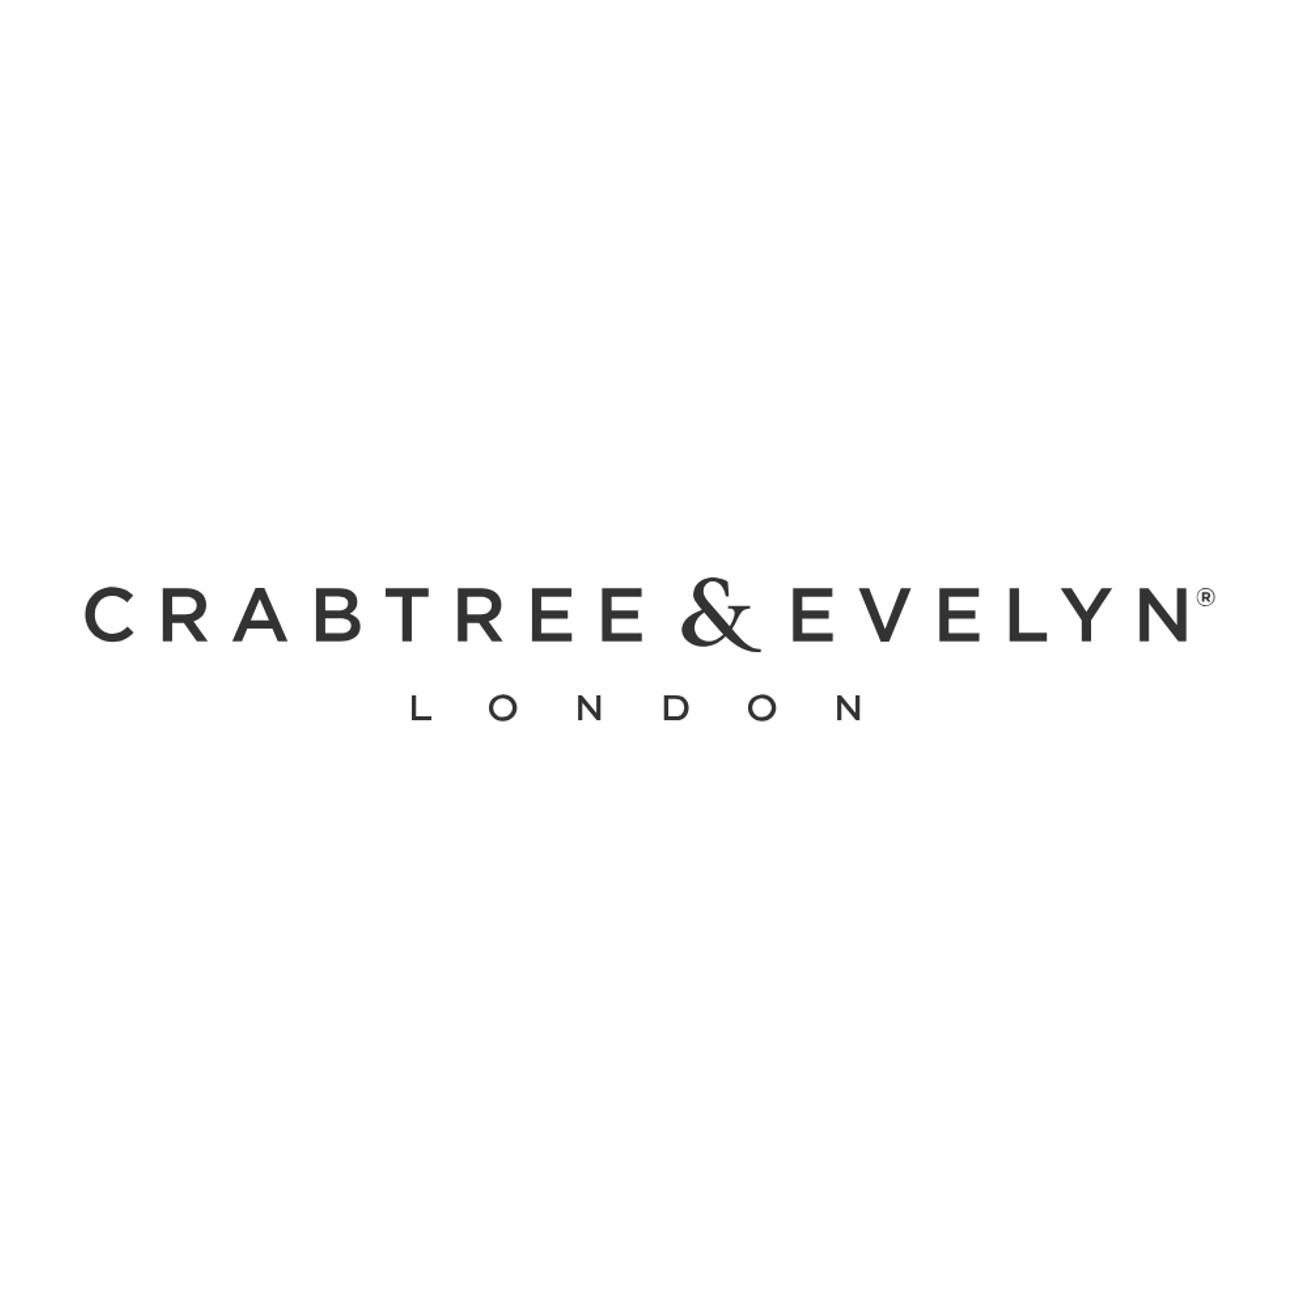 client_crabtree & evelyn